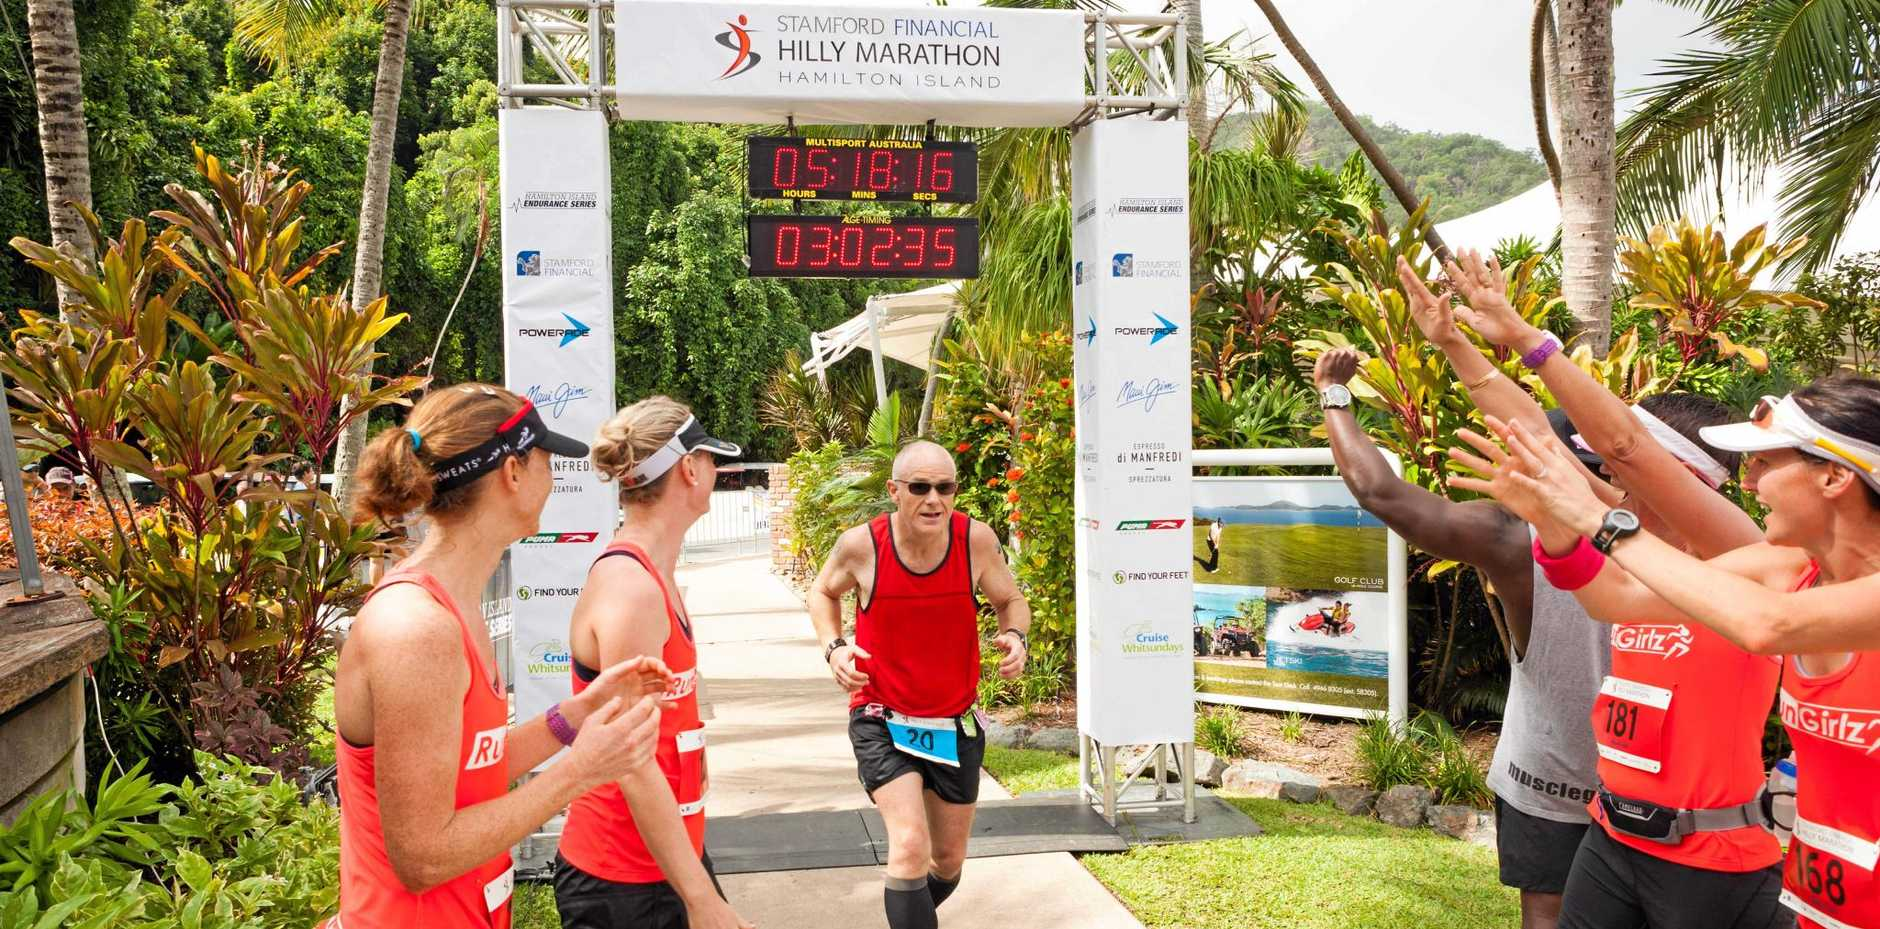 Road Runner Martin Lambert runs six times a week and said his favourite place to compete at is Hamilton Island.